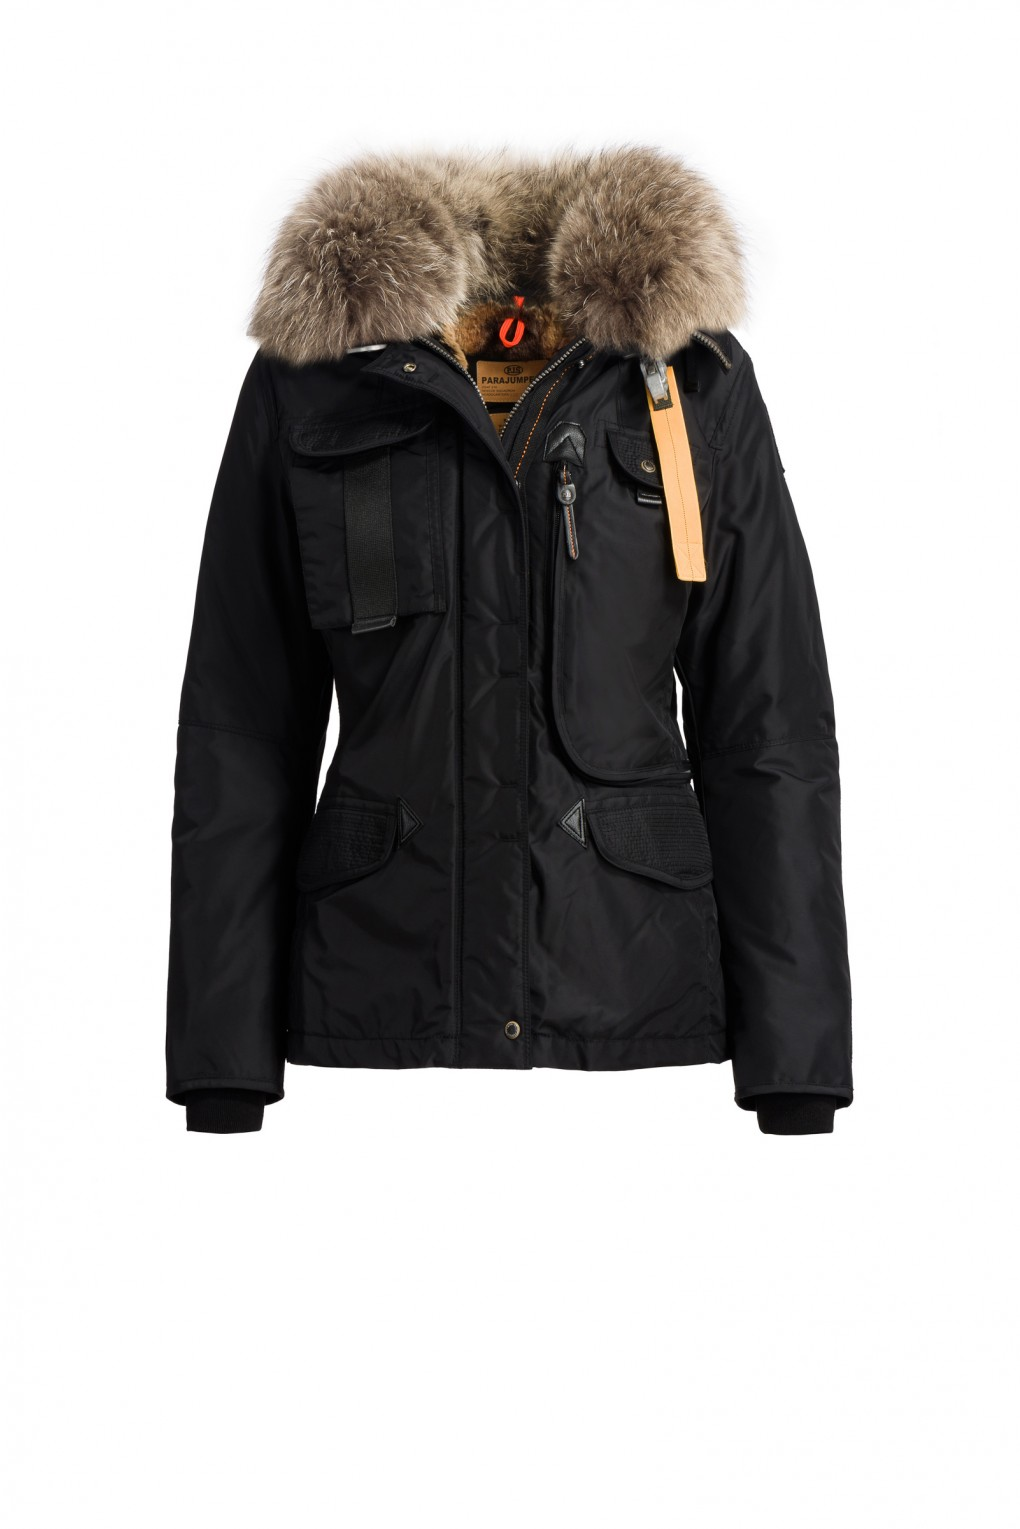 parajumpers winterjas sale dames